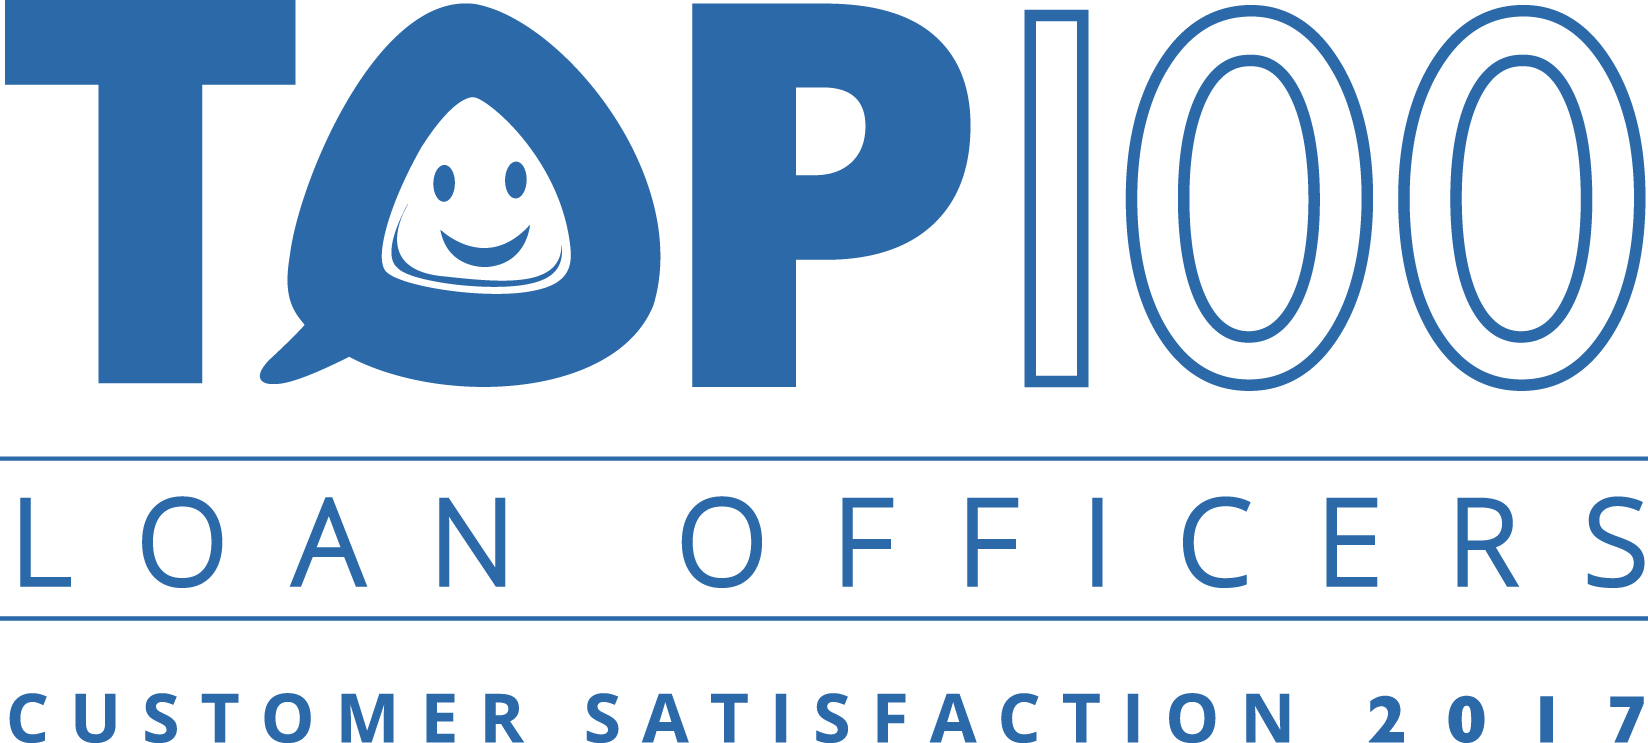 Top 100 Loan officers in Customer Satisfaction